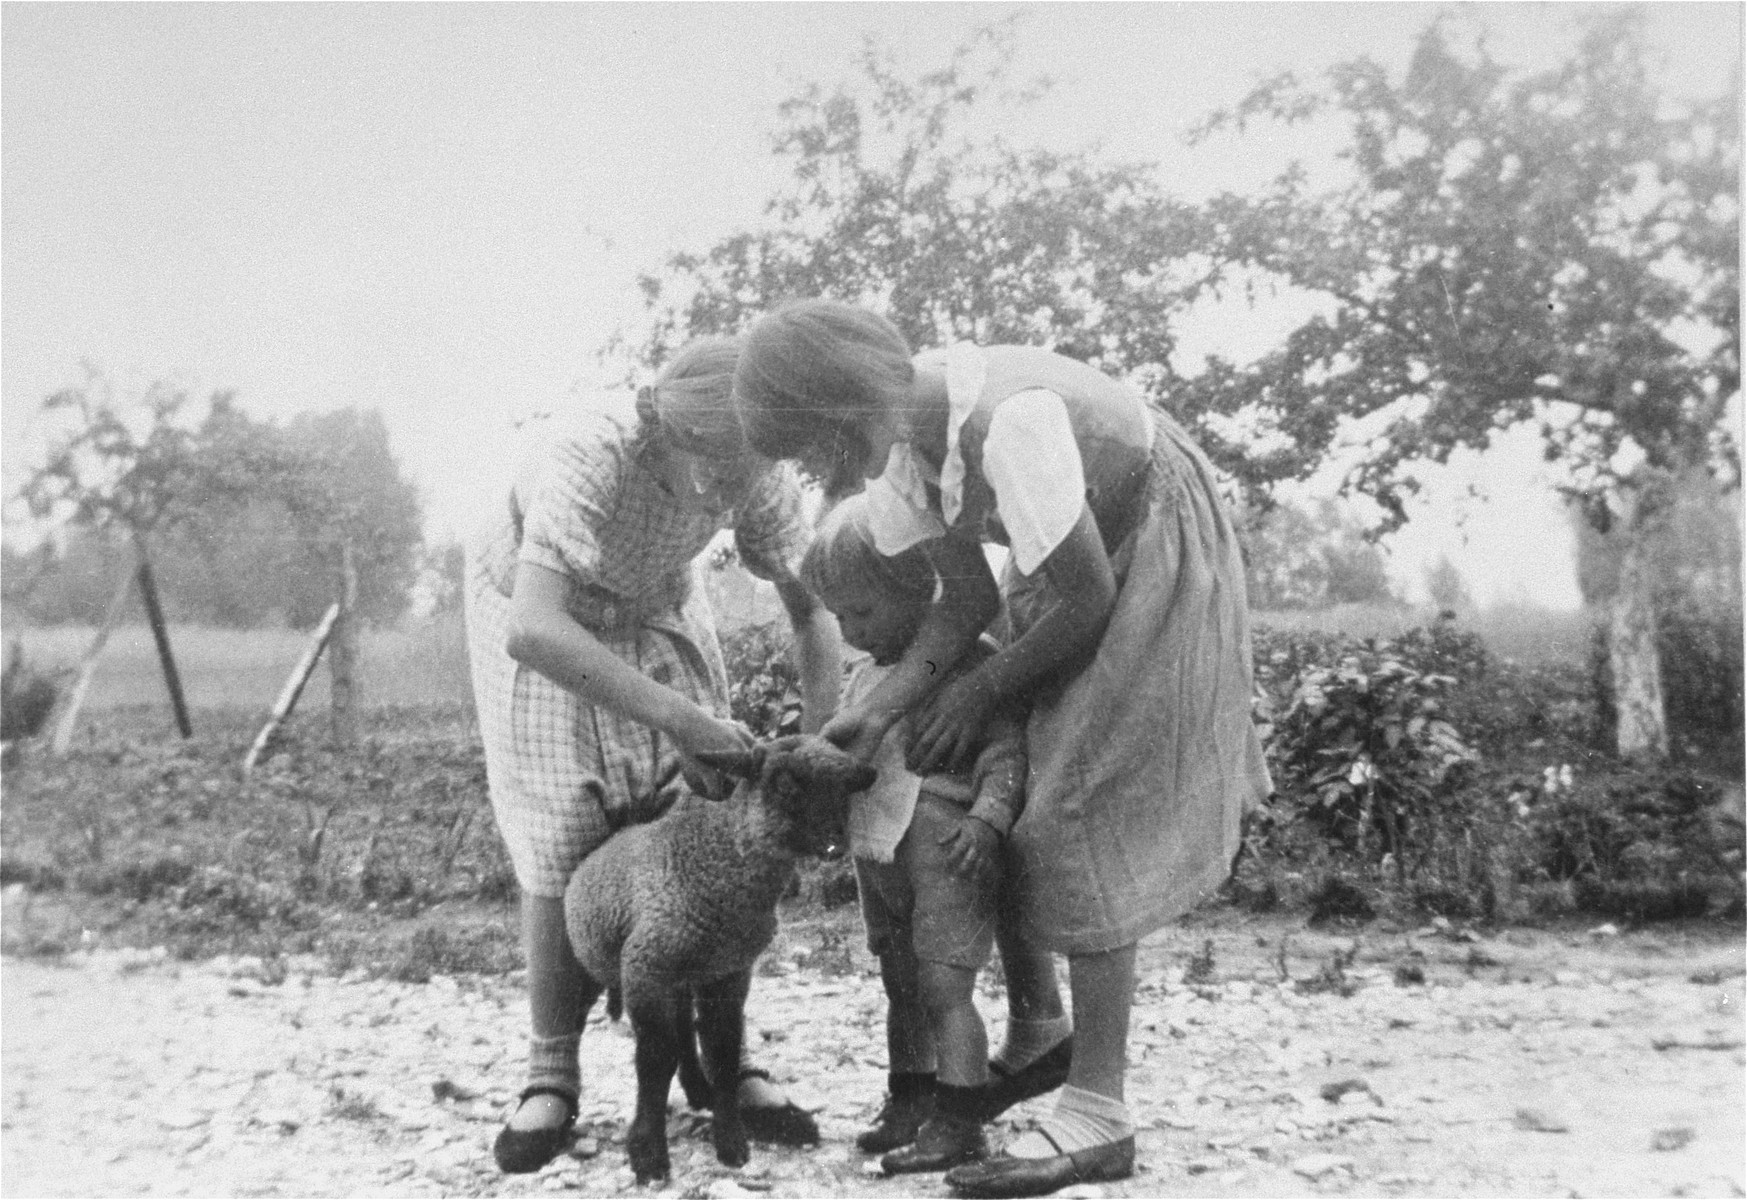 Magdalena, Paul-Gerhard, and Elisabeth attend to a lamb in the yard of the Kusserow family home in Bad Lippspringe.